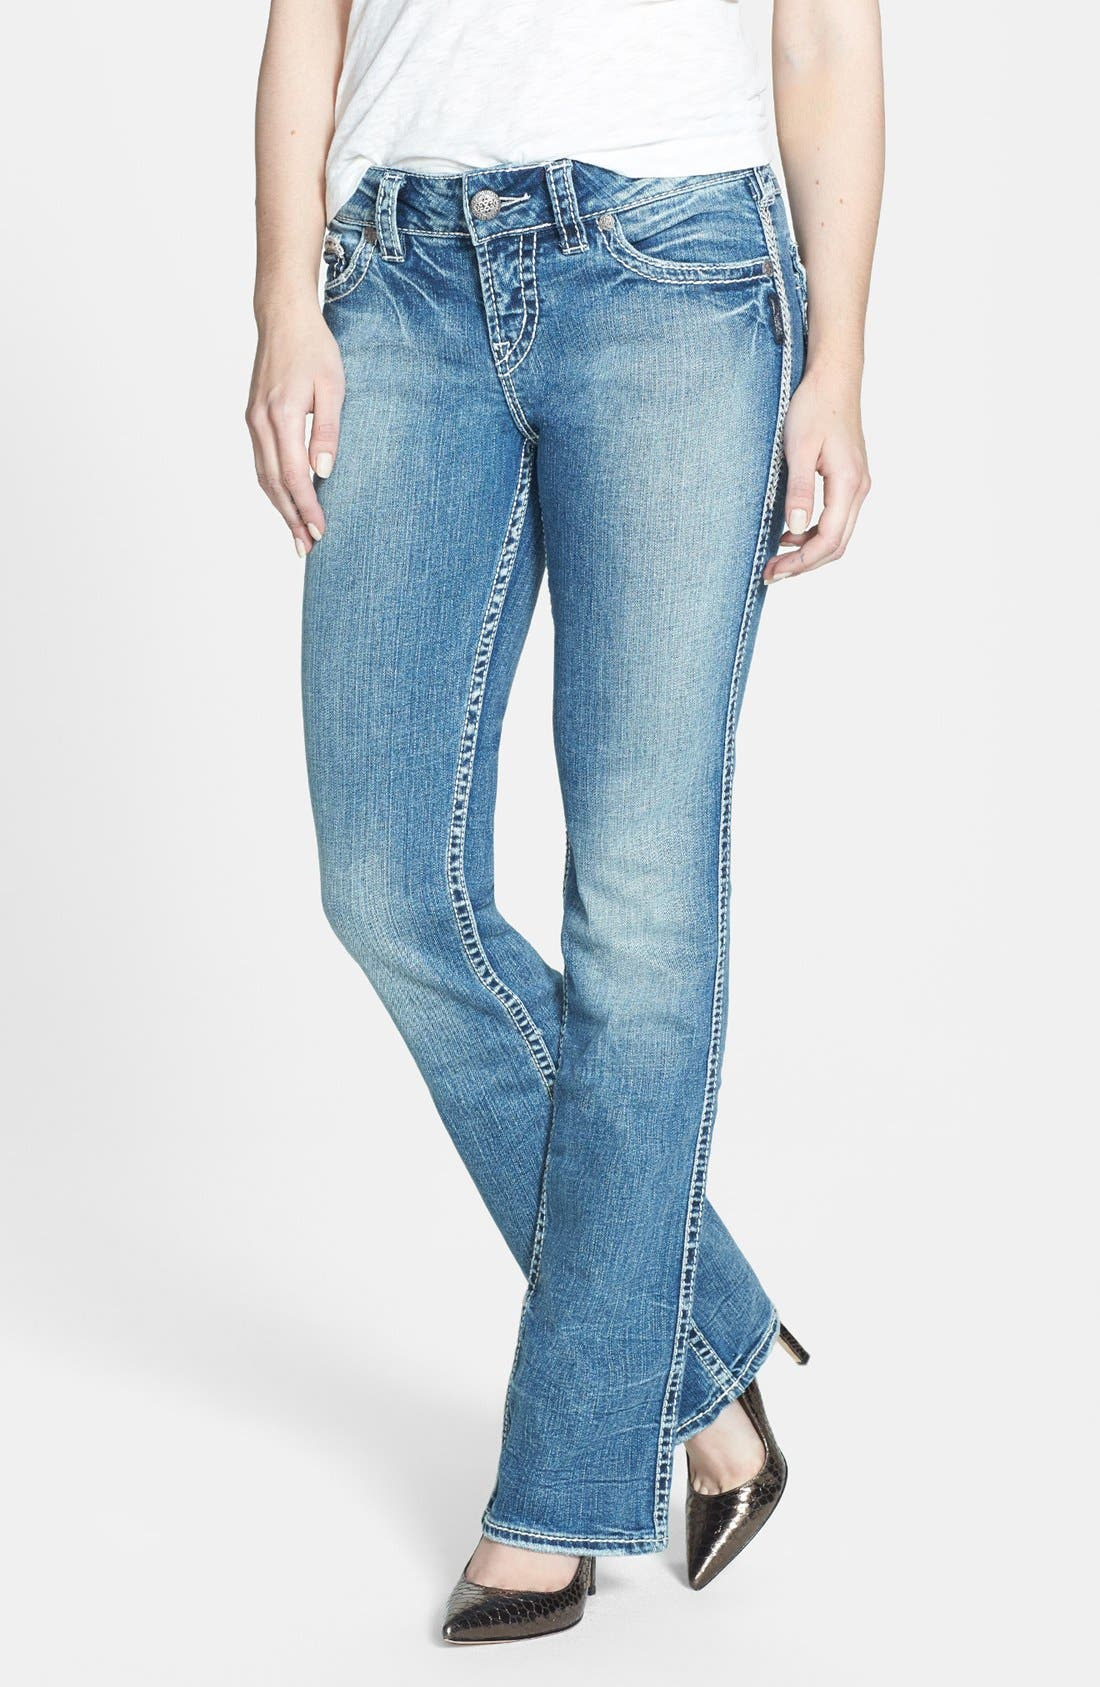 Alternate Image 1 Selected - Silver Jeans Co. 'Suki' Flap Pocket Bootcut Jeans (Indigo)